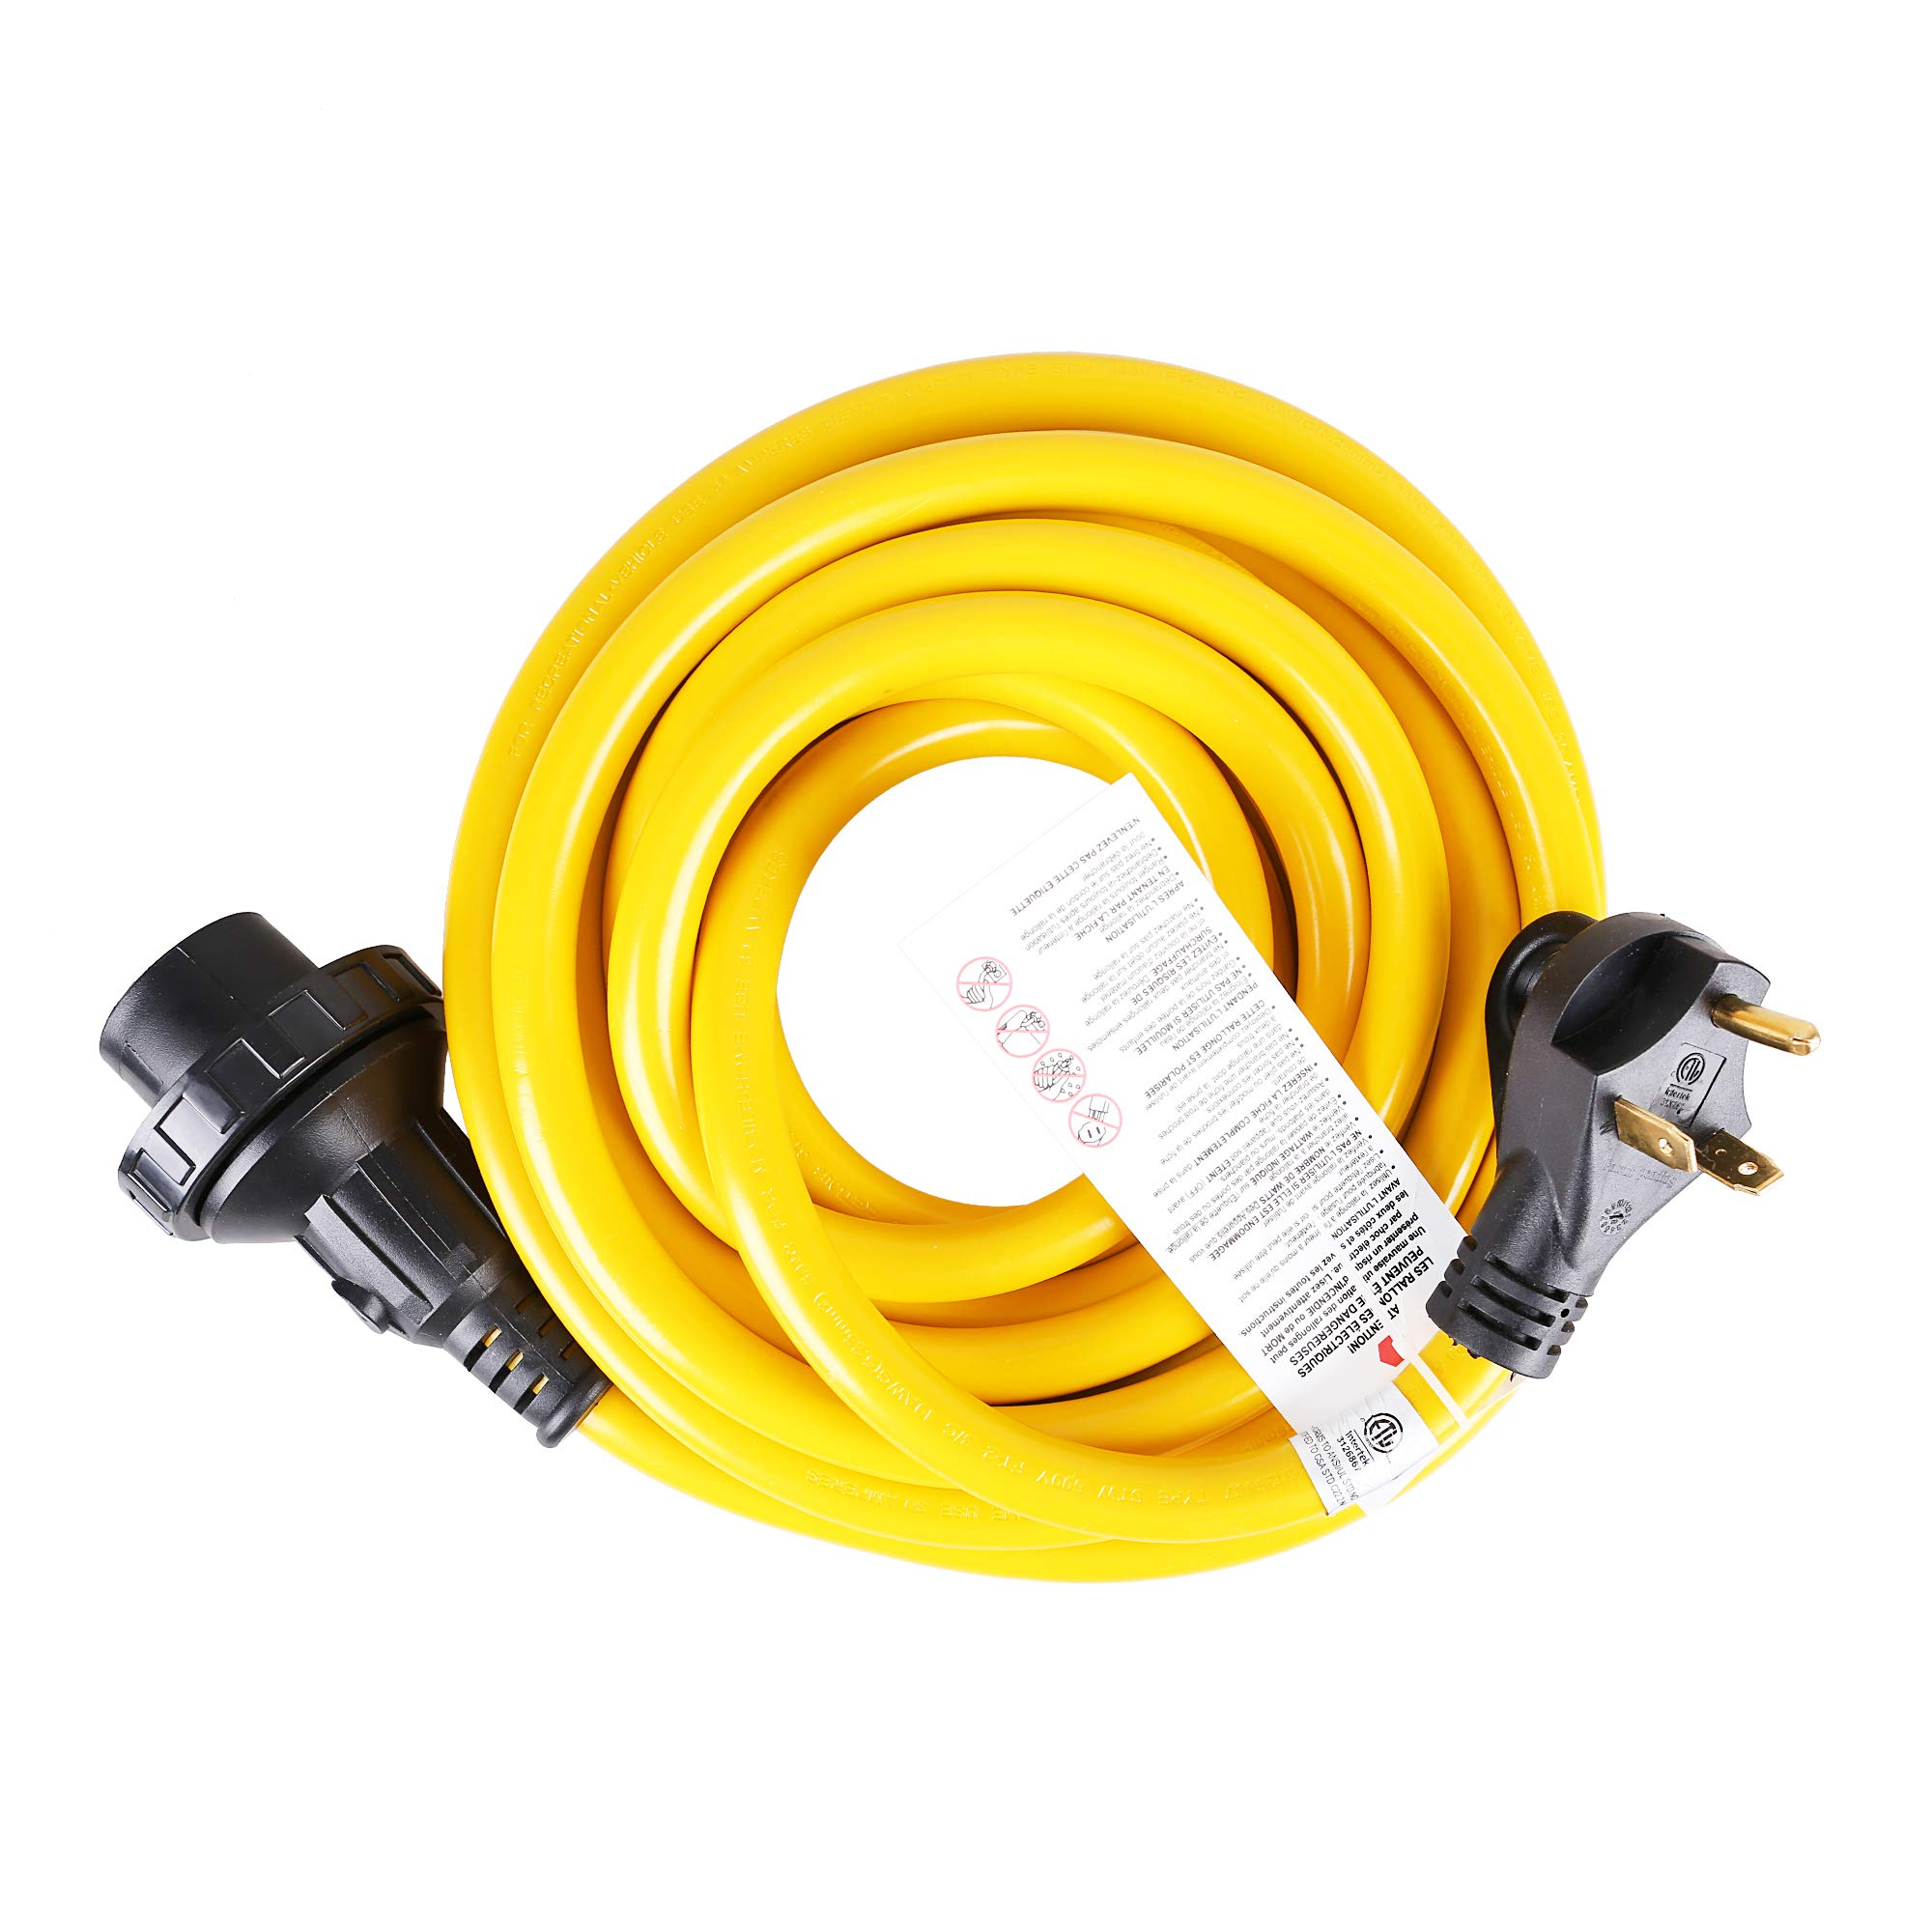 EPICORD RV Extension Cord 30Amp For Trailer Motorhome Camper with Grip Handle Plug, Twist Lock Connector,25FT